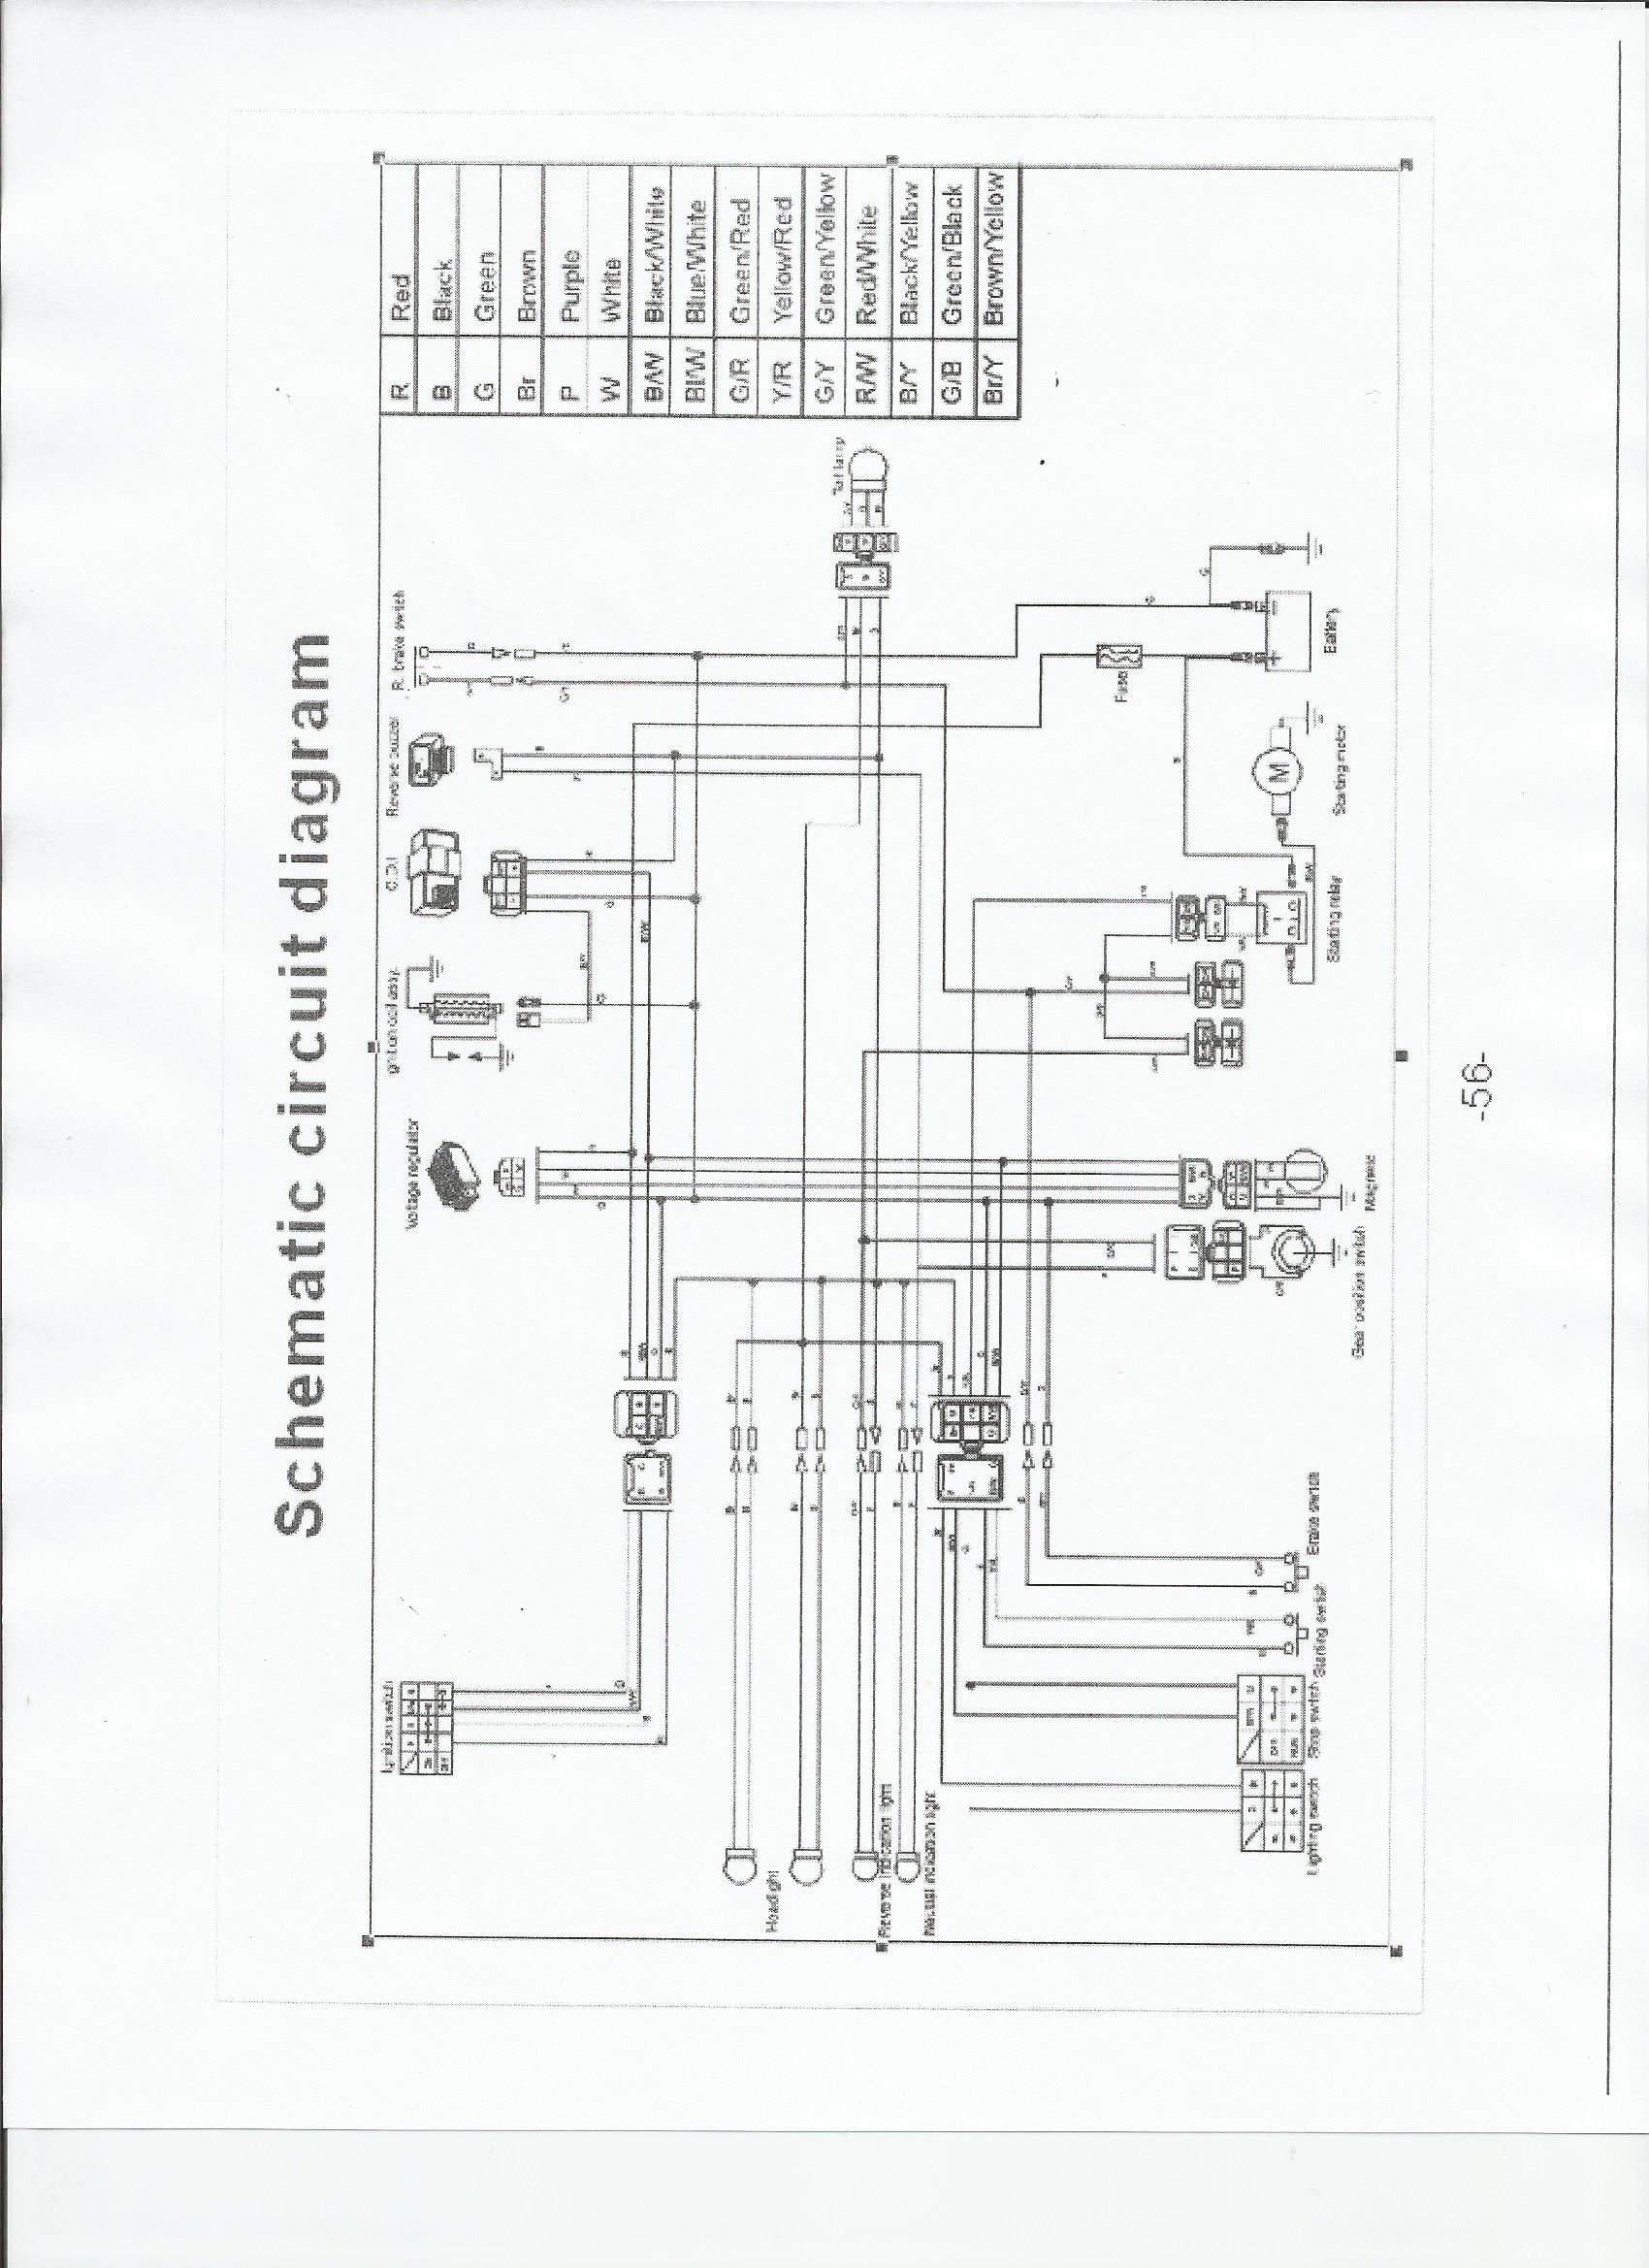 tao tao wiring schematic taotao ata110 b wiring diagram taotao 110cc wiring diagram wiring diagram for 110cc chinese atv at eliteediting.co